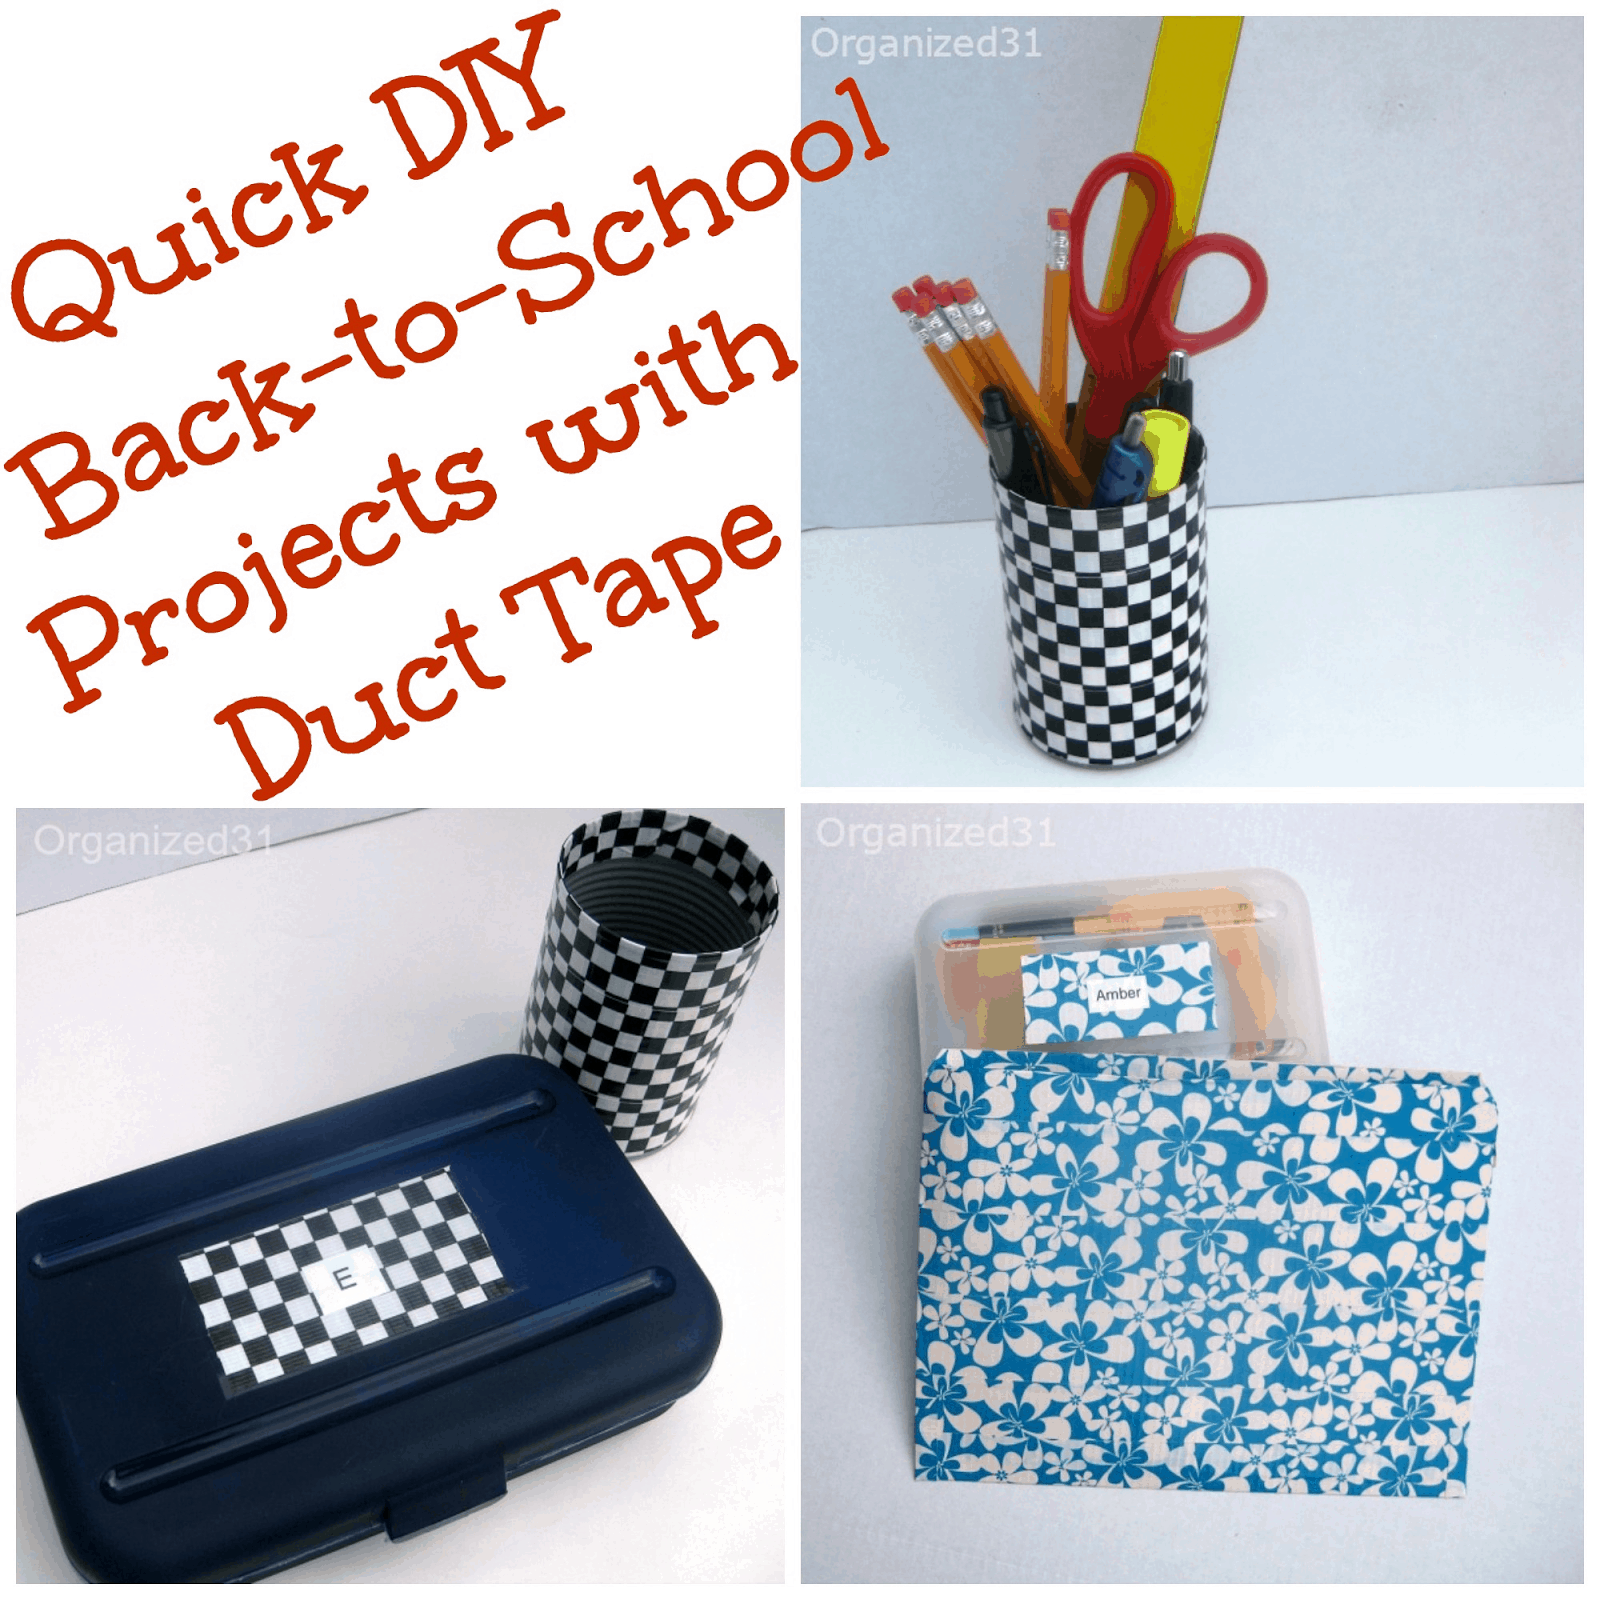 Quick Diy School Supplies With Duct Tape Organized 31